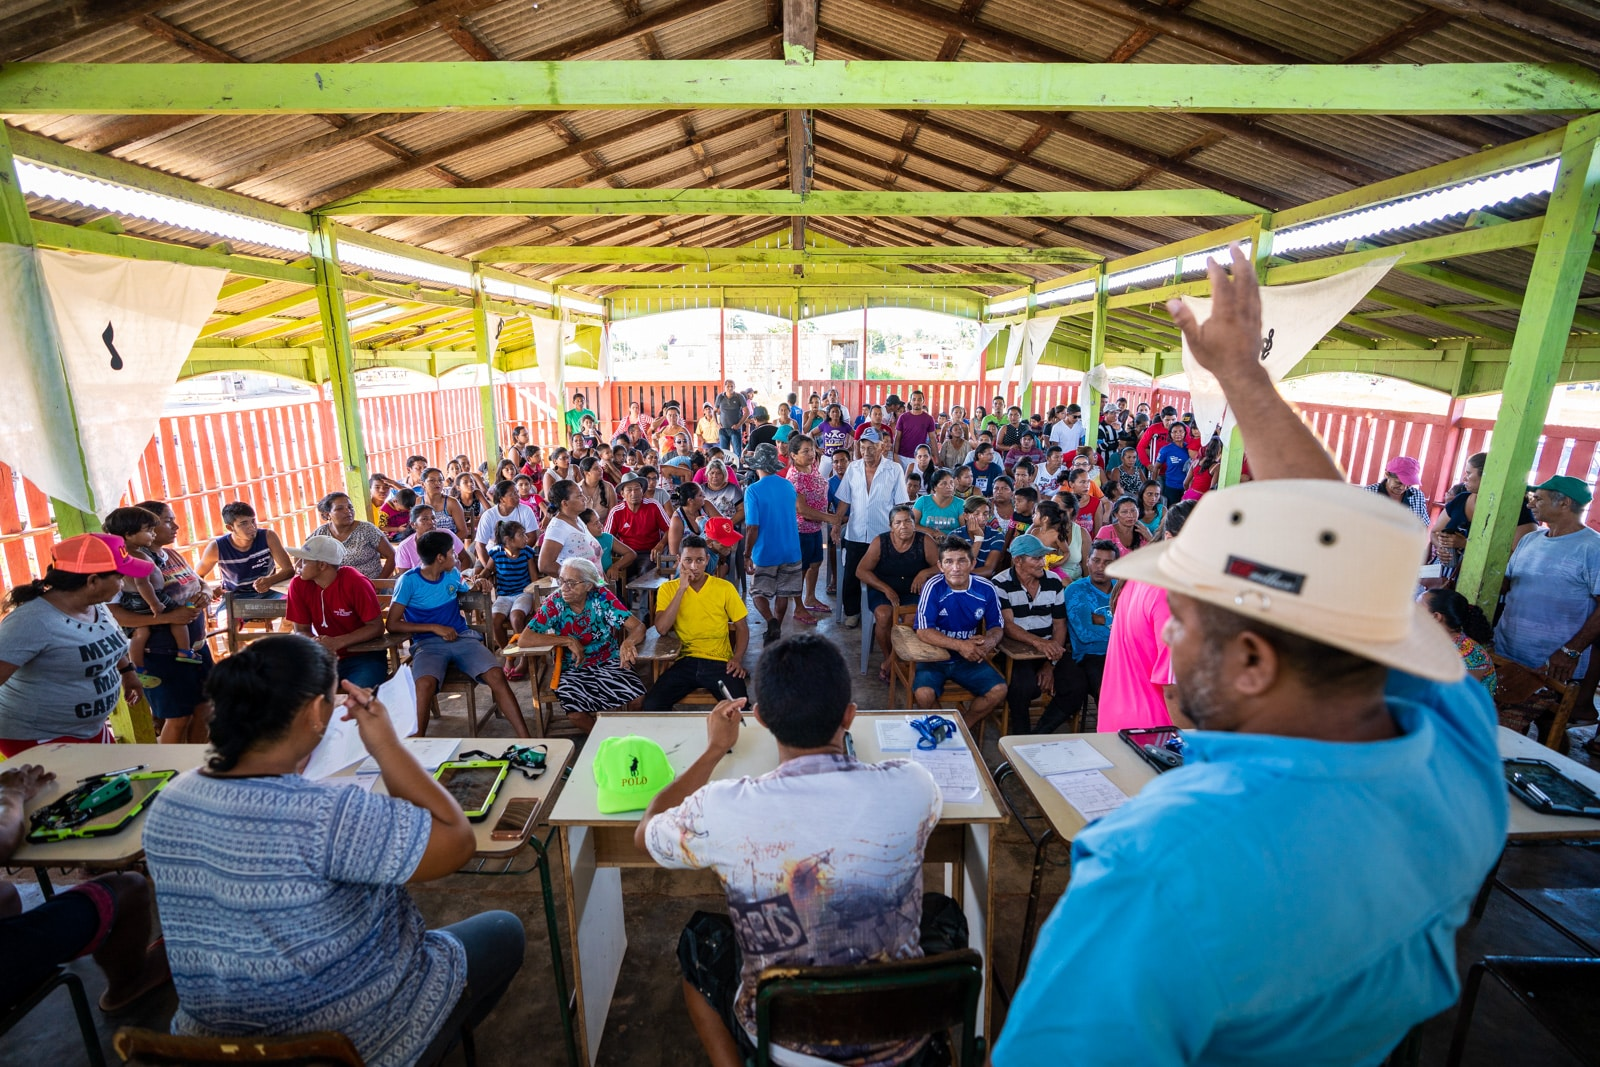 Reflections - Patients waiting their turn at a OneSight eye clinic in Cuia, Brazil - Lost With Purpose travel blog